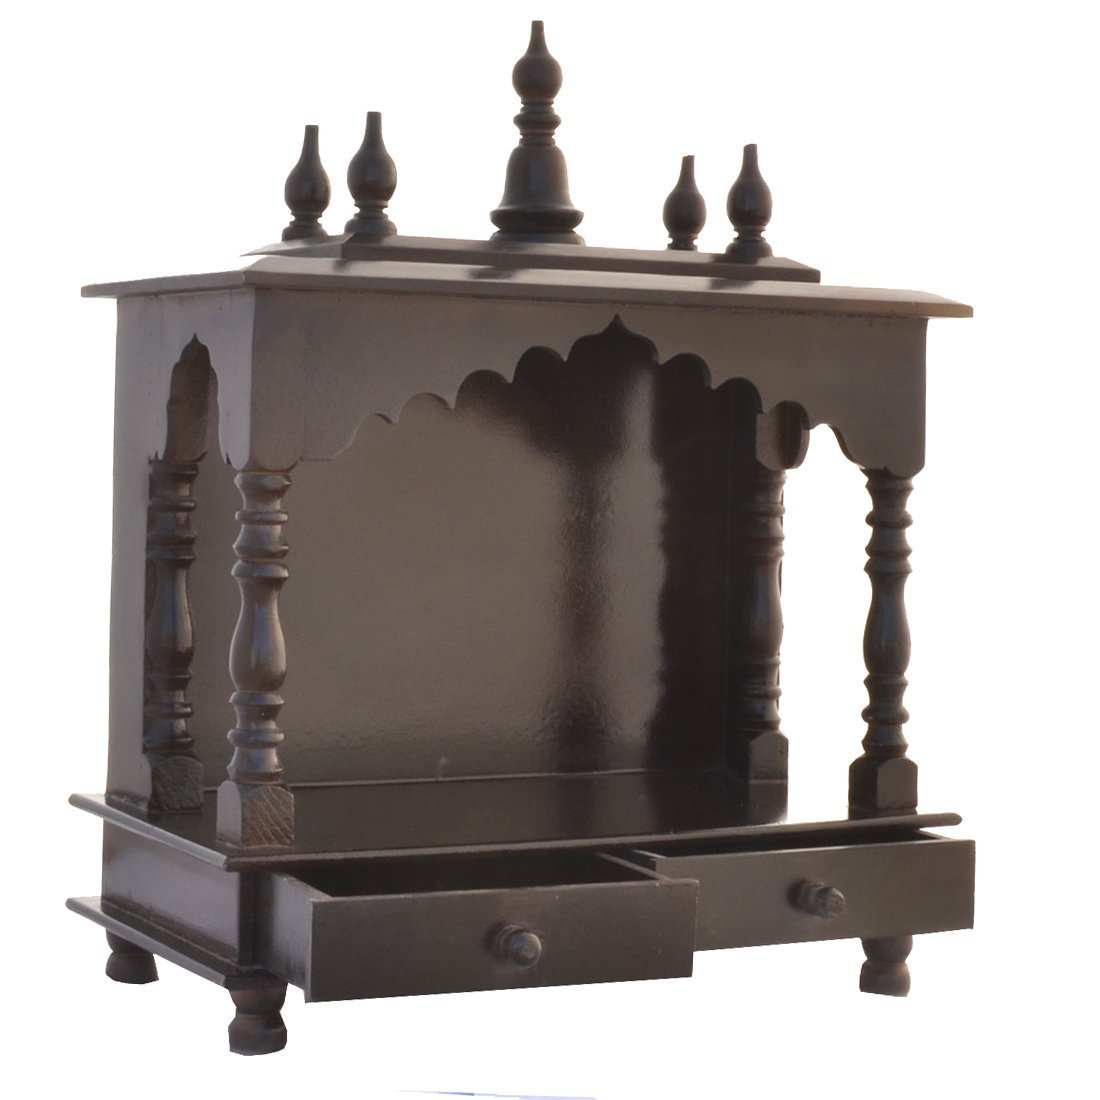 Pooja Stand Designs Images : Amazon mereappne wooden pooja mandir indian hindu